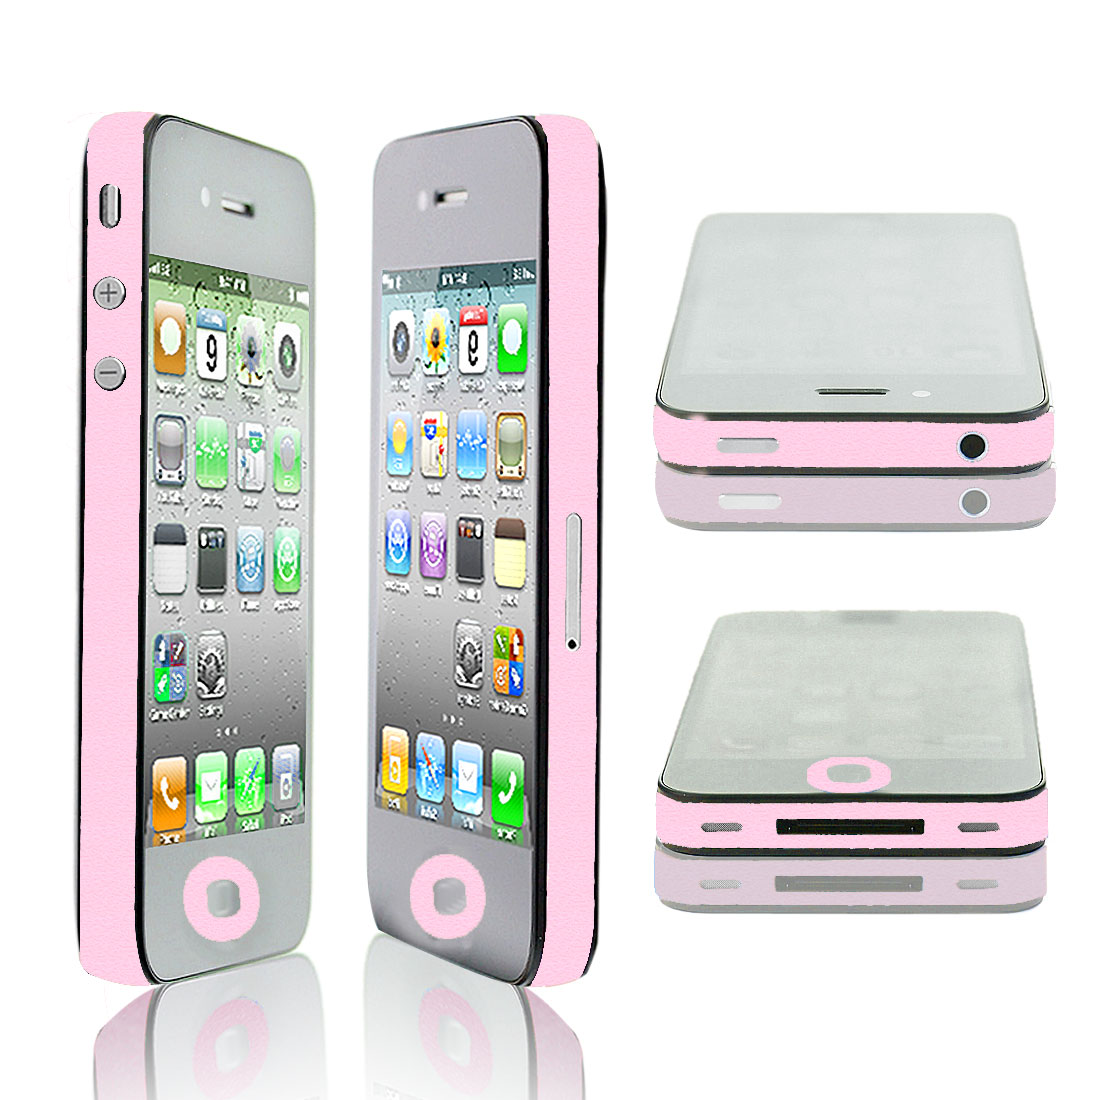 Button Frame Sticker Edge Wrap Decal Shield Pink for Apple iPhone 4 4S 4G